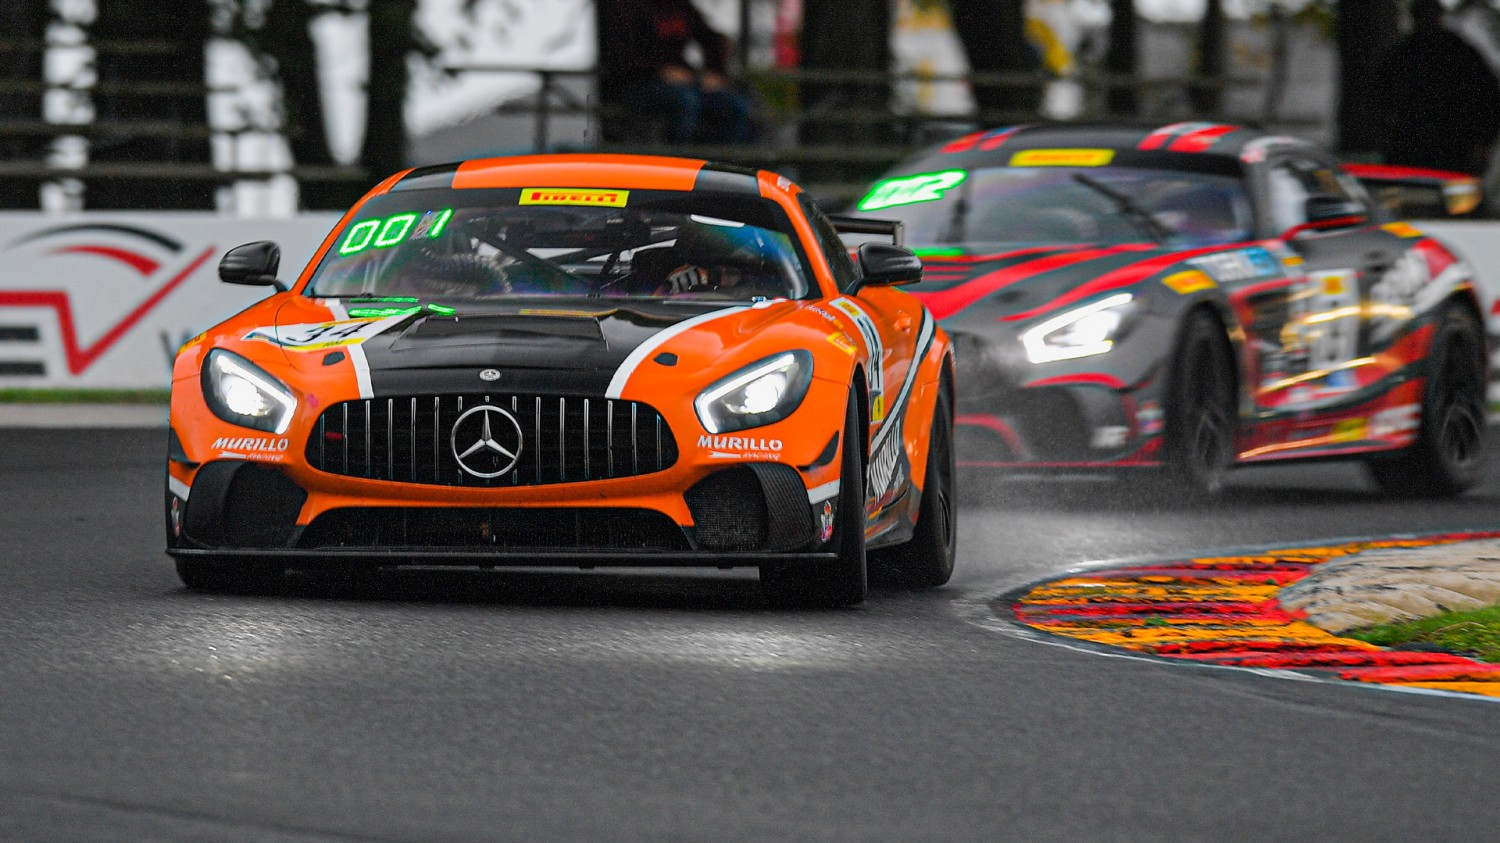 Murillo Racing Wins Caution-filled Pirelli GT4 America SprintX Race 1 at Road America